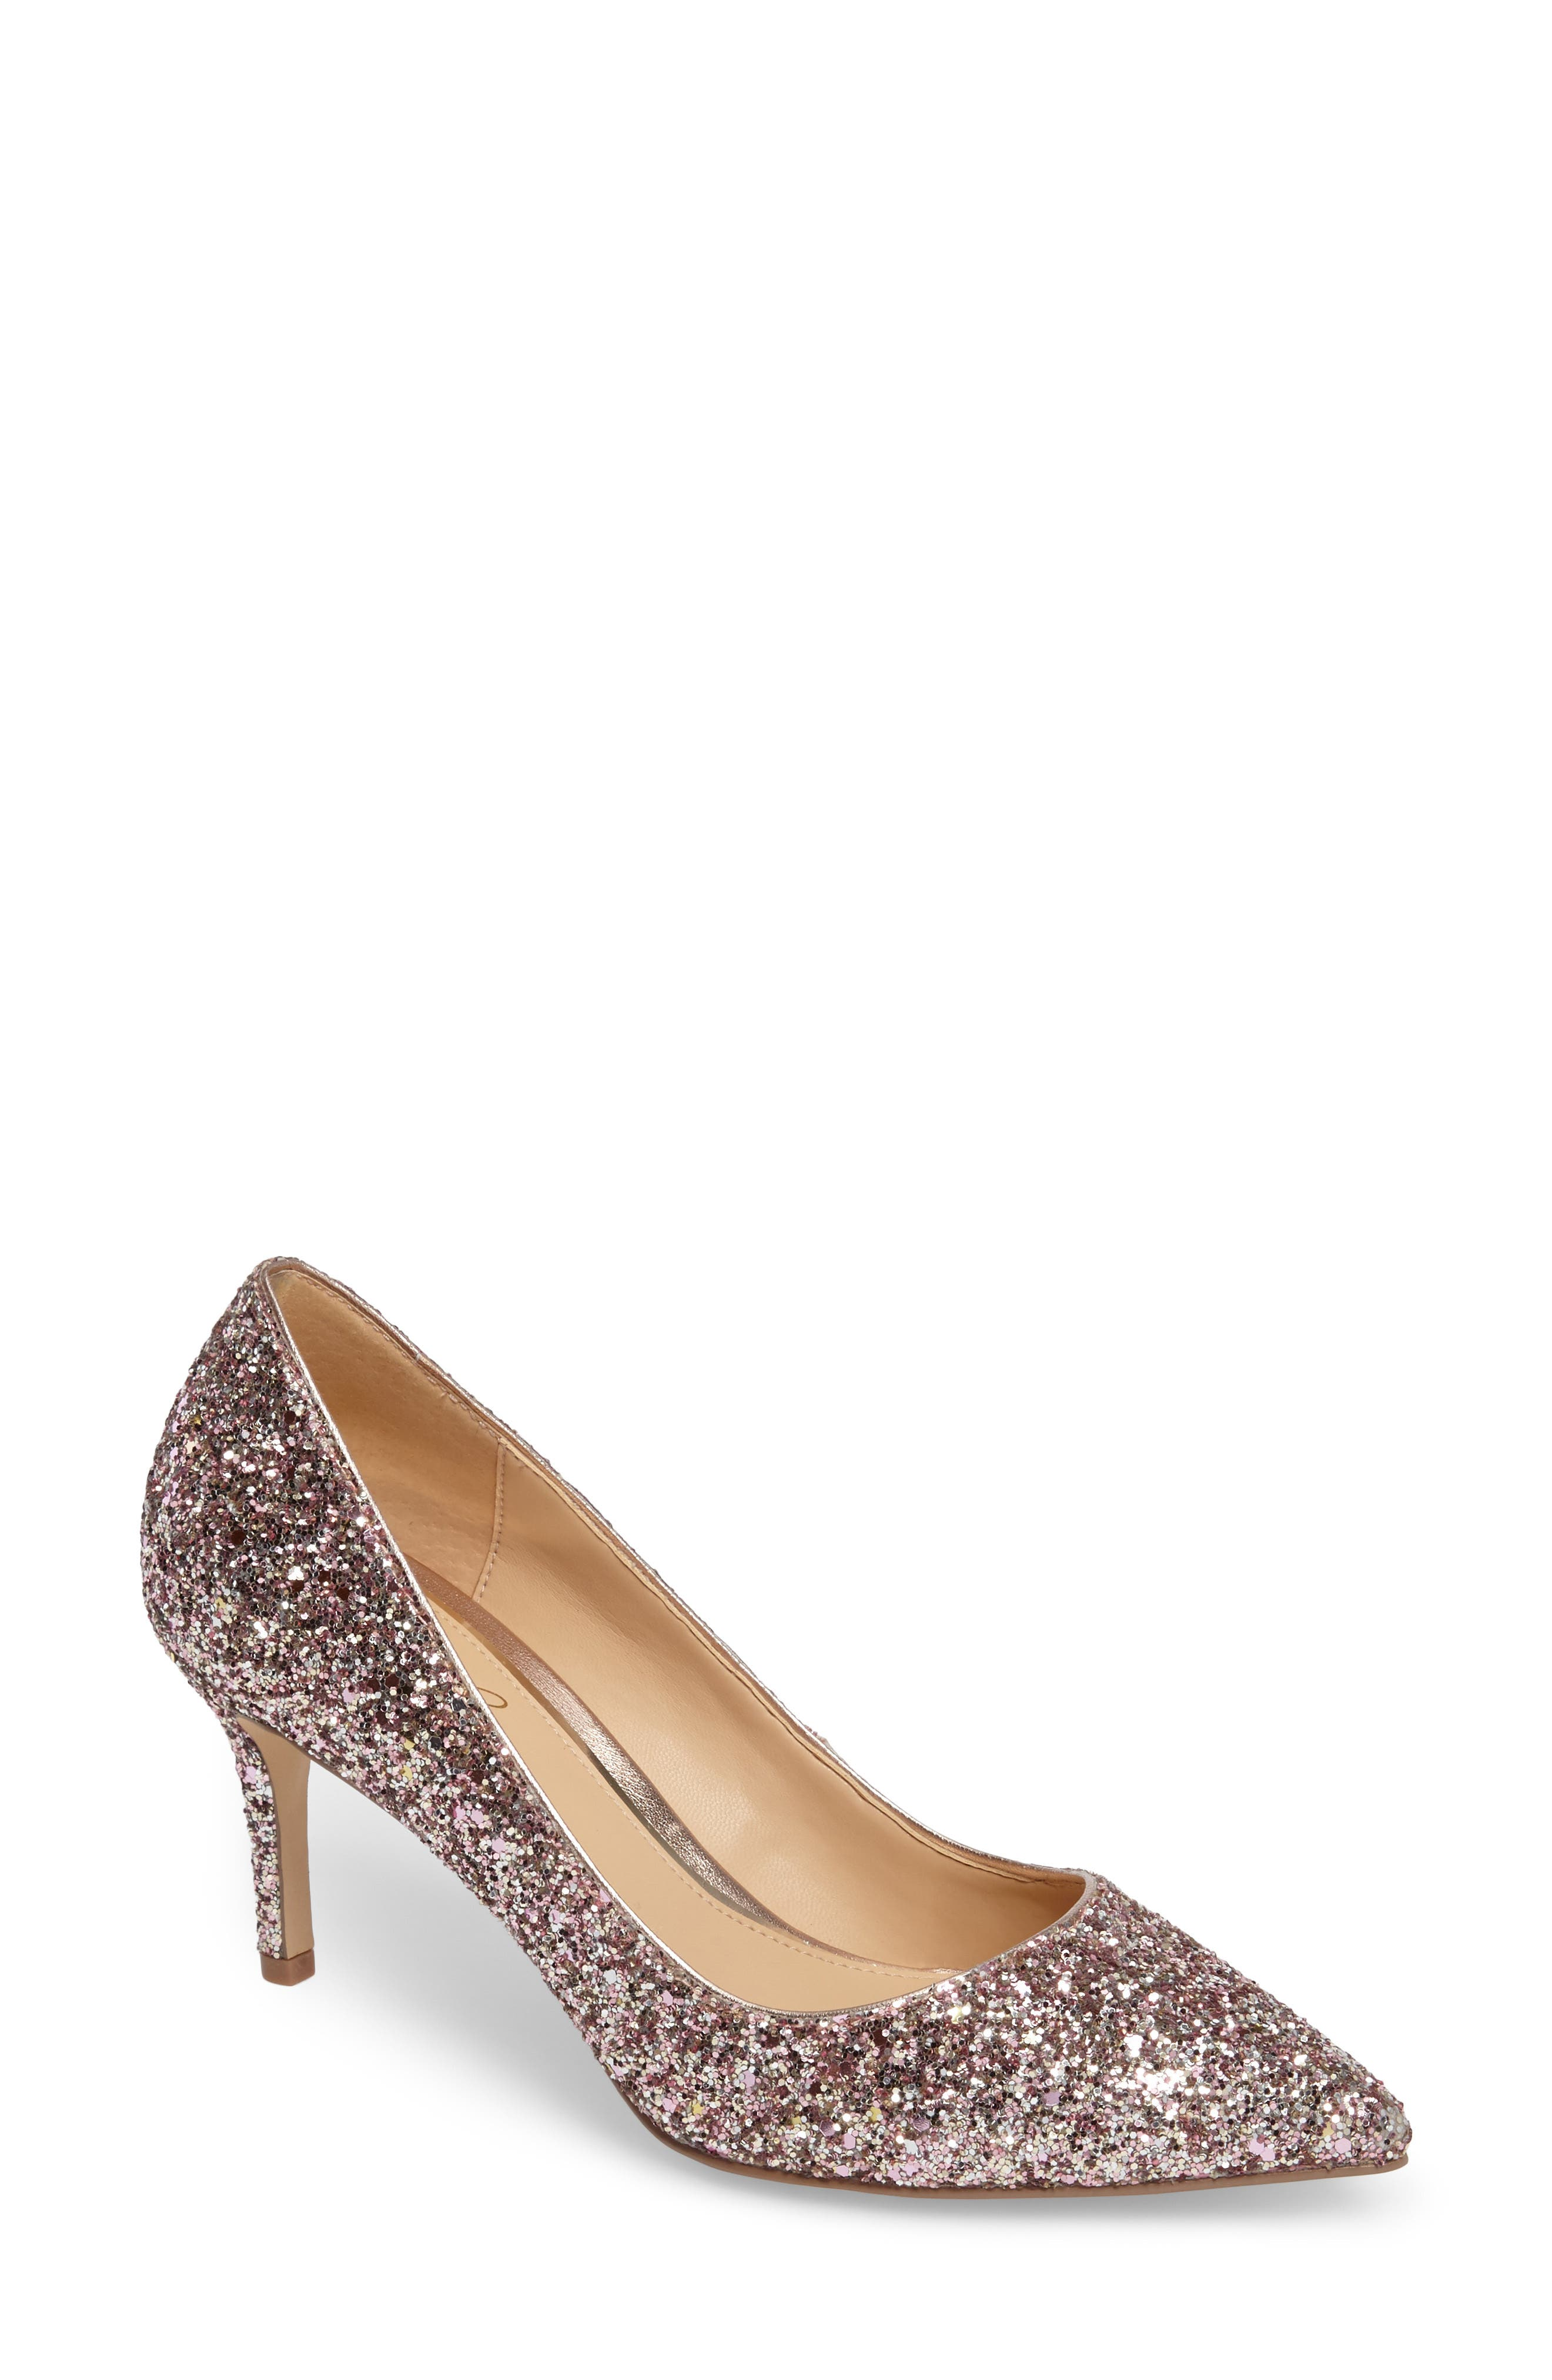 Lyla Glitter Pointy Toe Pump,                         Main,                         color, ROSE GOLD